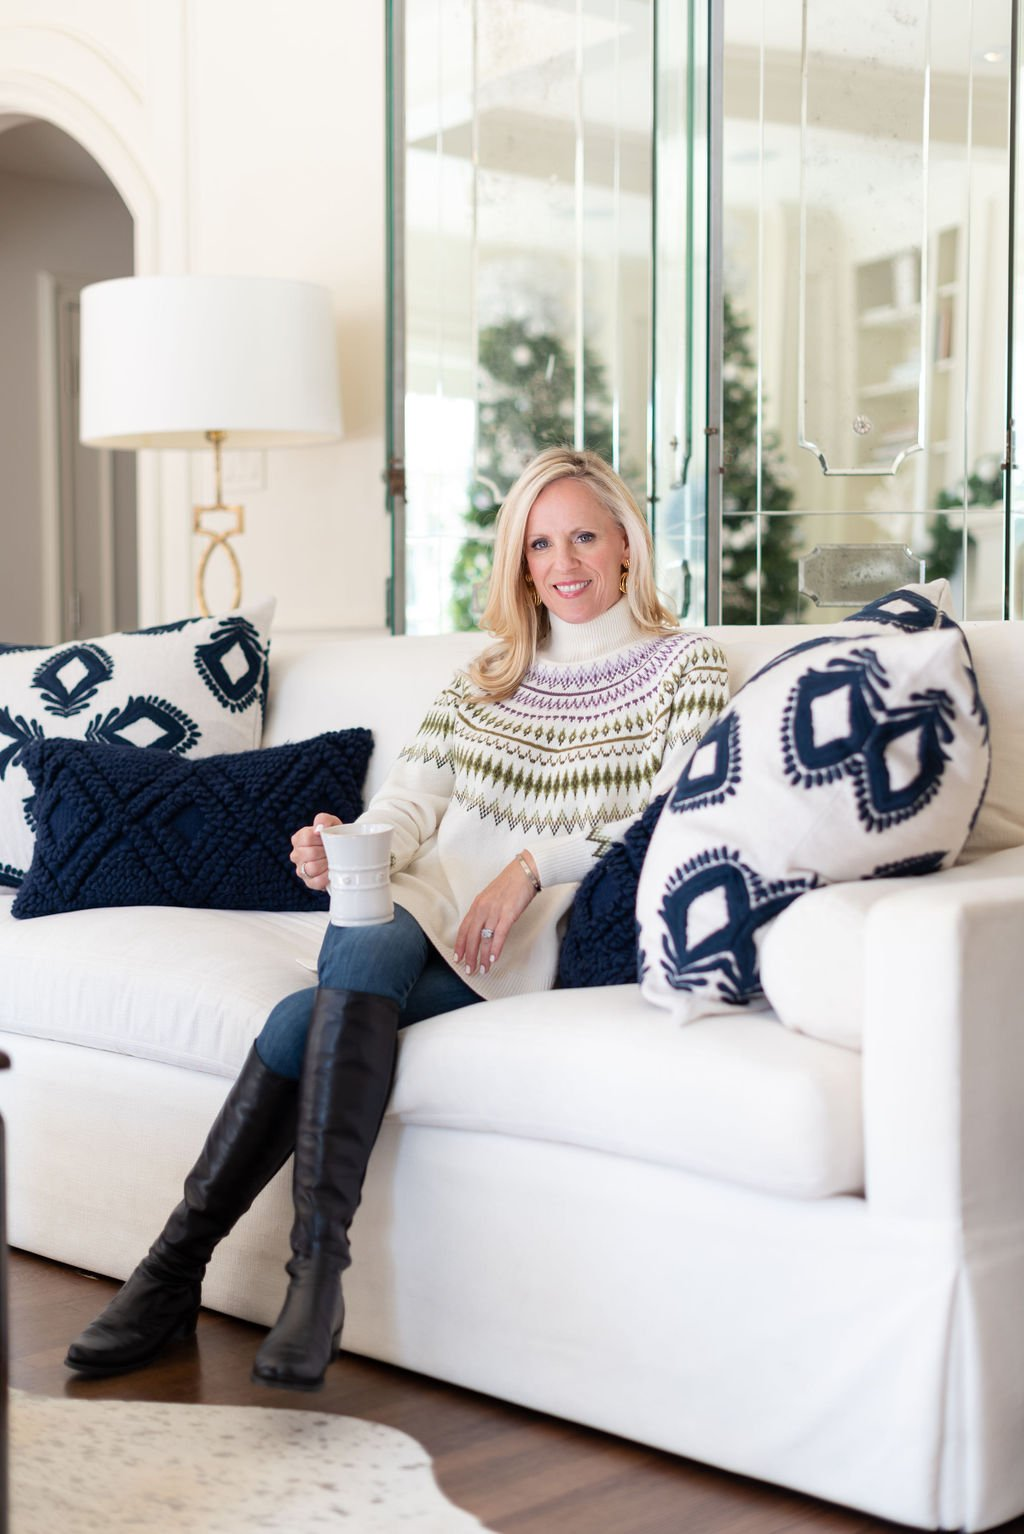 Alicia Wood, Dallas Lifestyle Expert, Dallas Fashion Blogger, Fairisle Sweater, How to Slow Down, New Year's Goals